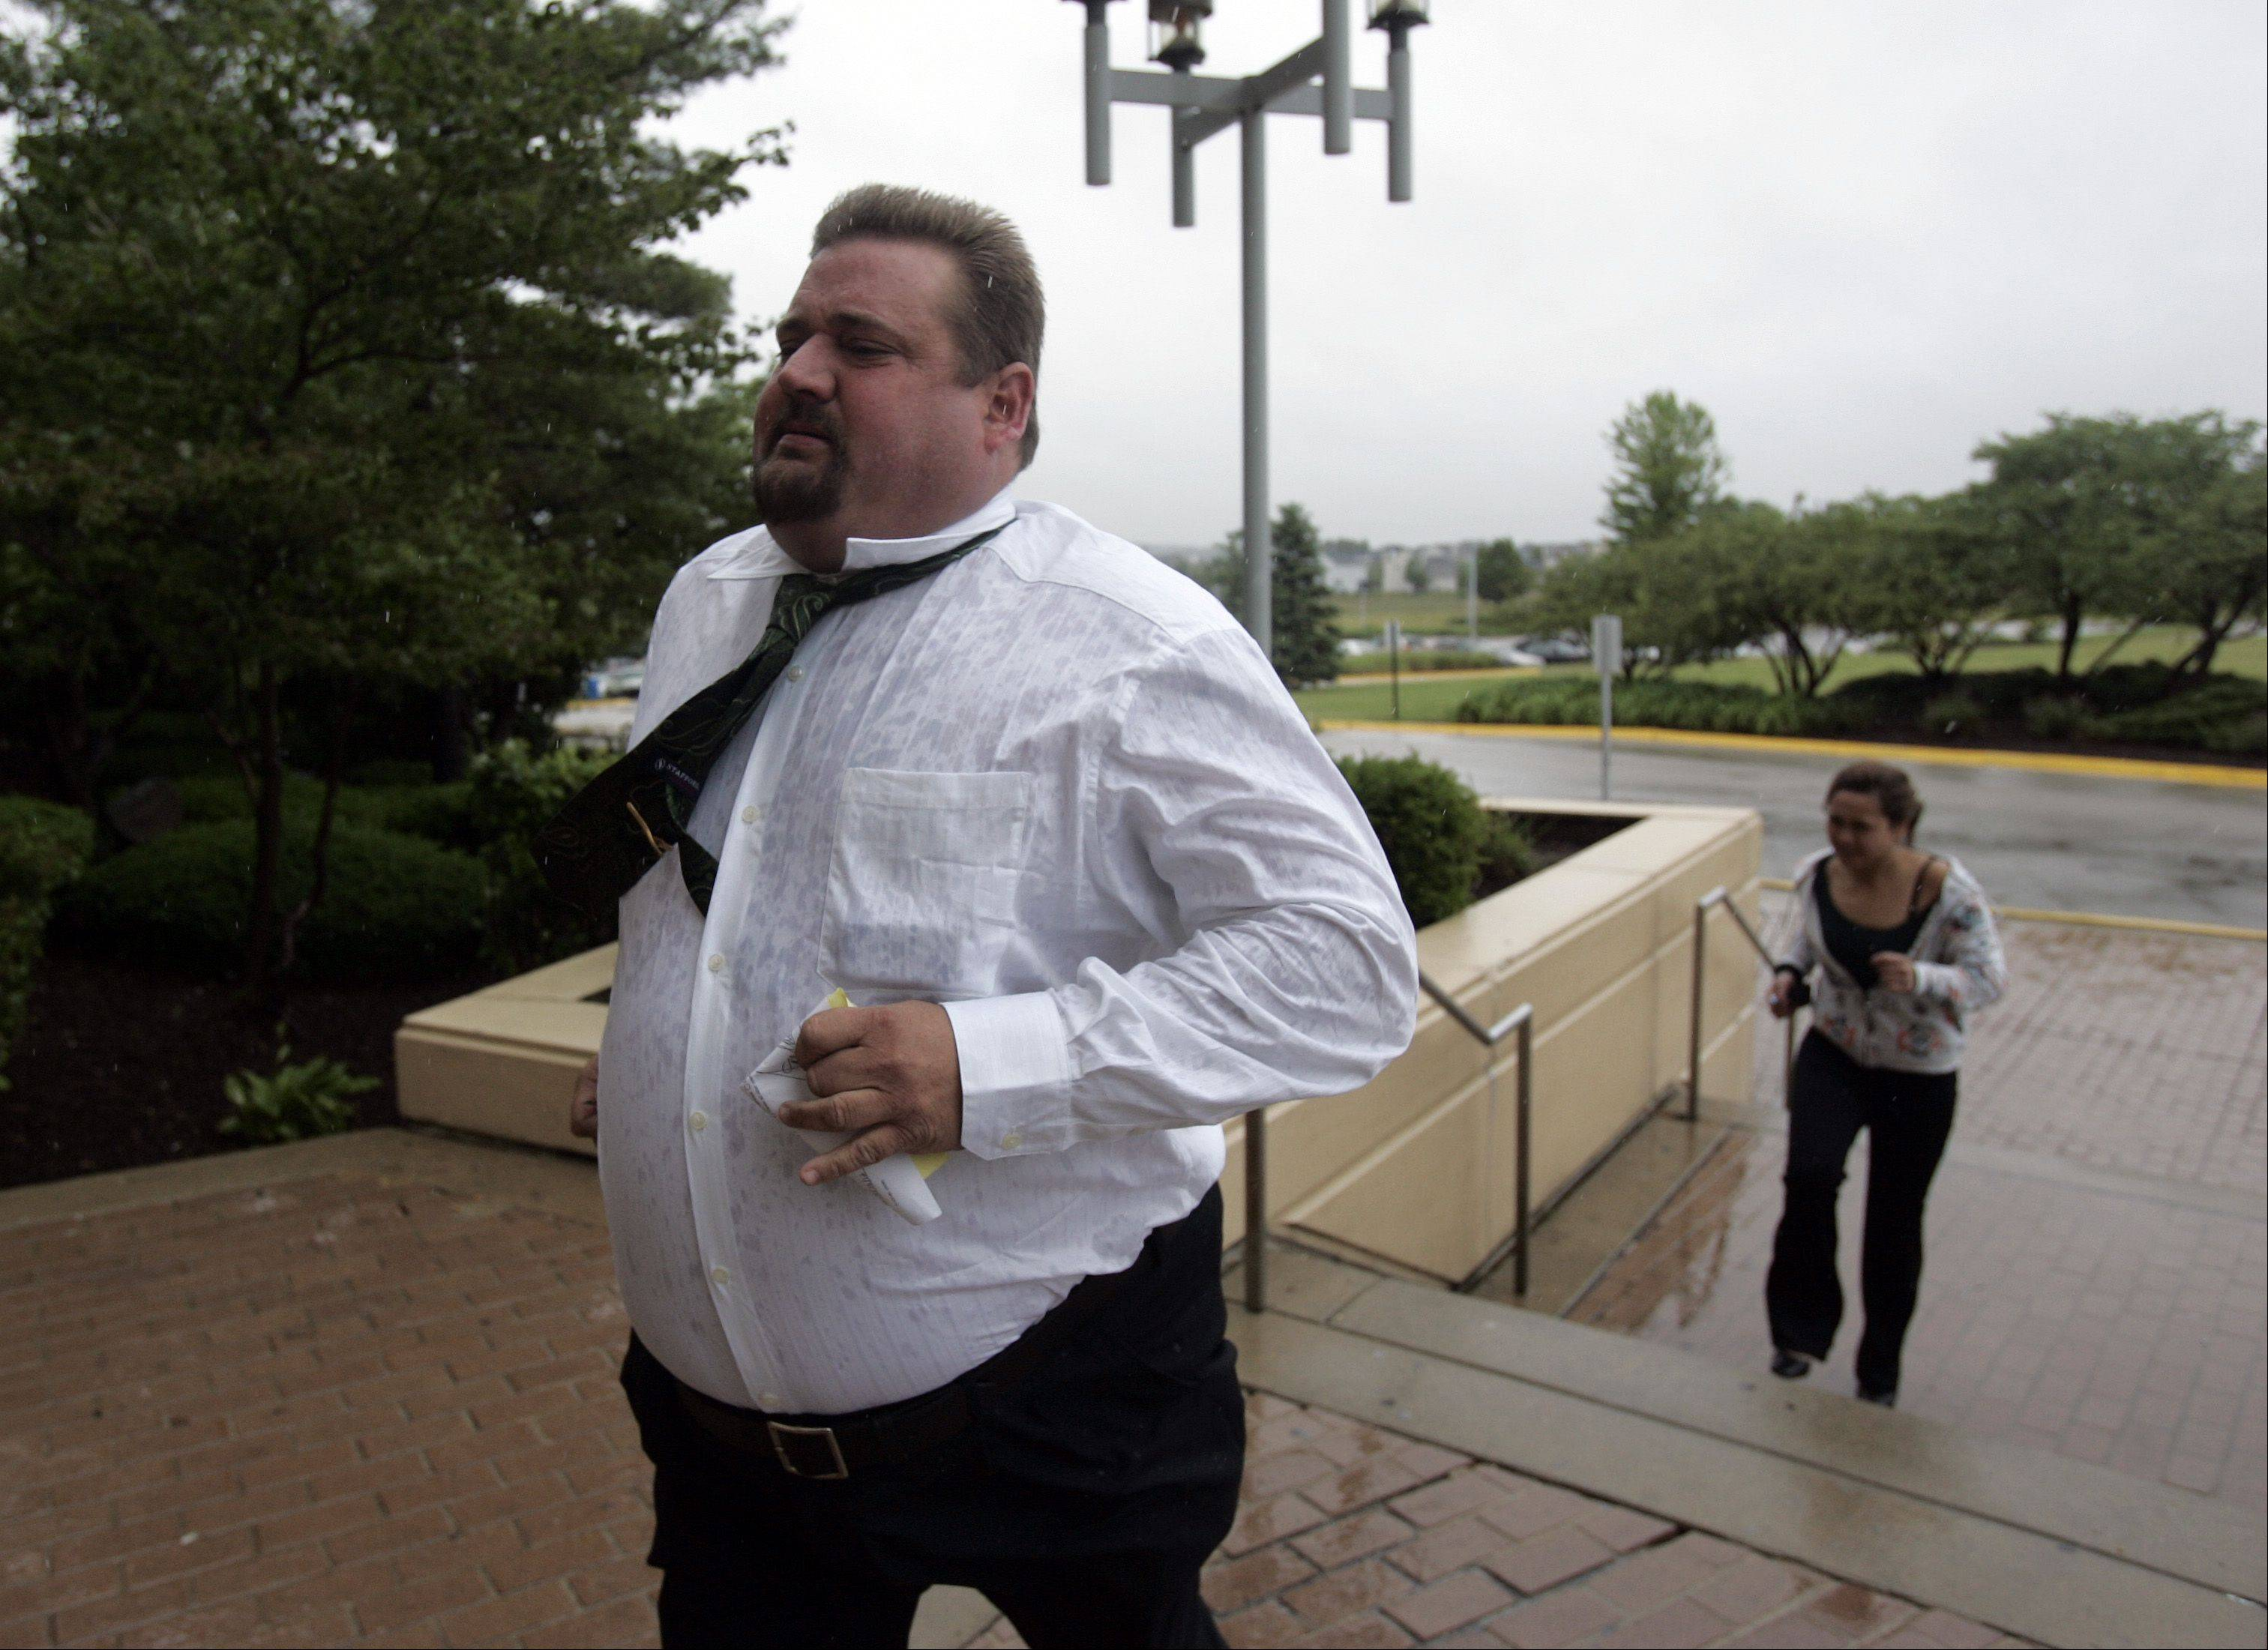 Phillip Rinn, a repeat dog abuser from Aurora, enters the Kane County Judicial Center in St. Charles Thursday for his sentencing for breaking his dog's teeth in late 2010. Rinn, who was convicted of killing one of his dogs in the 1990s, pleaded guilty to felony animal cruelty earlier this year.